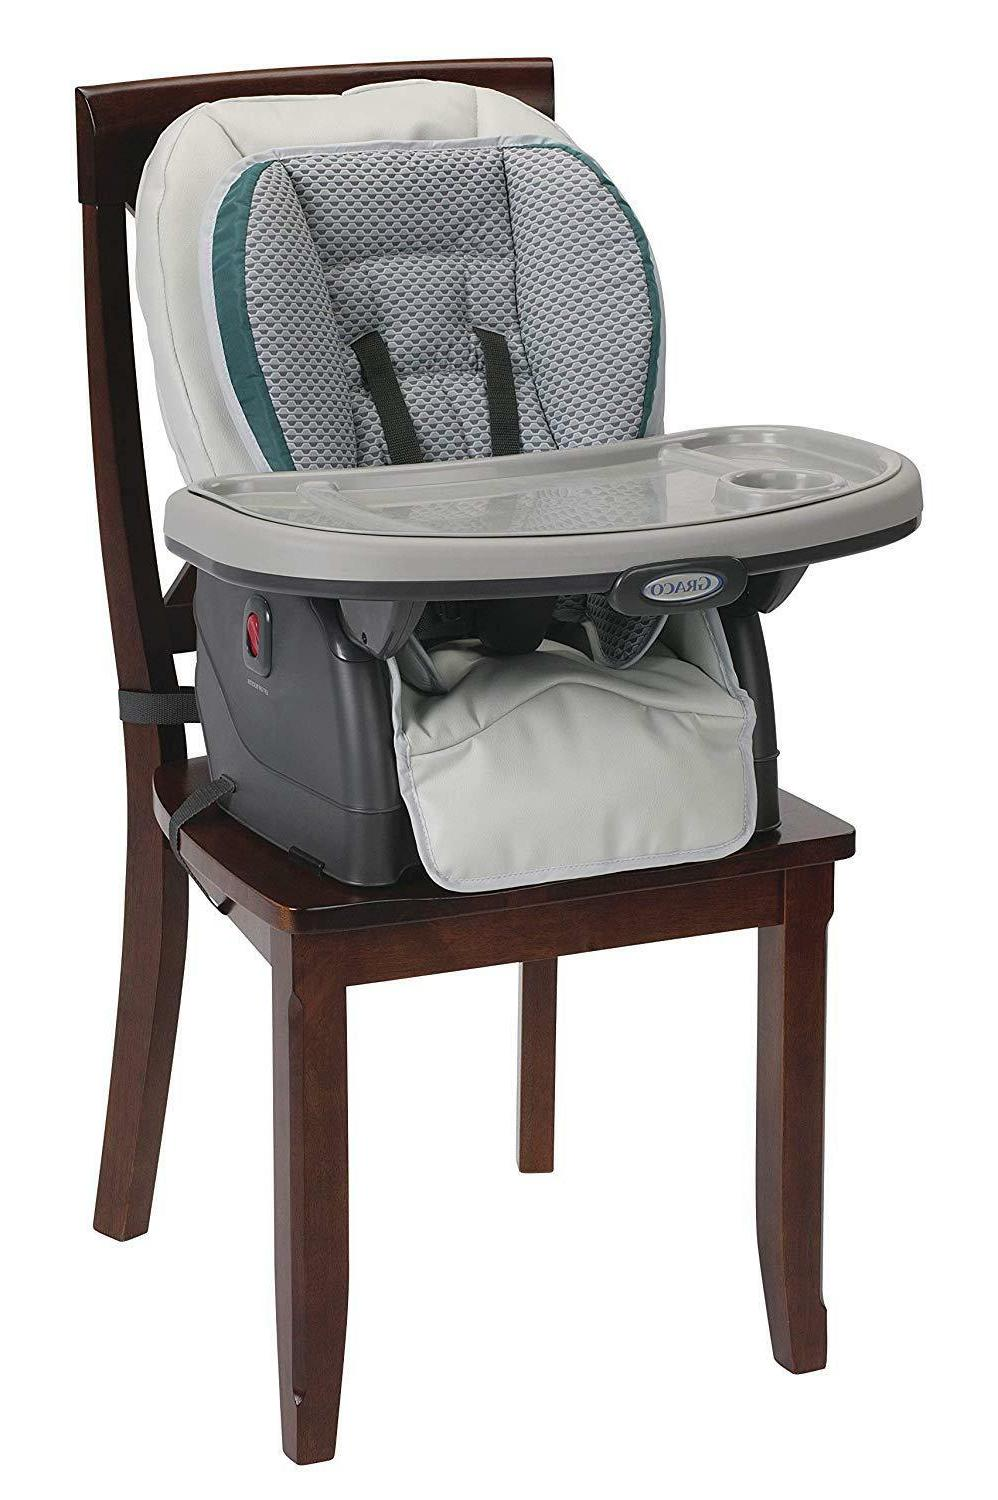 Graco Blossom 6-in-1 Highchair,